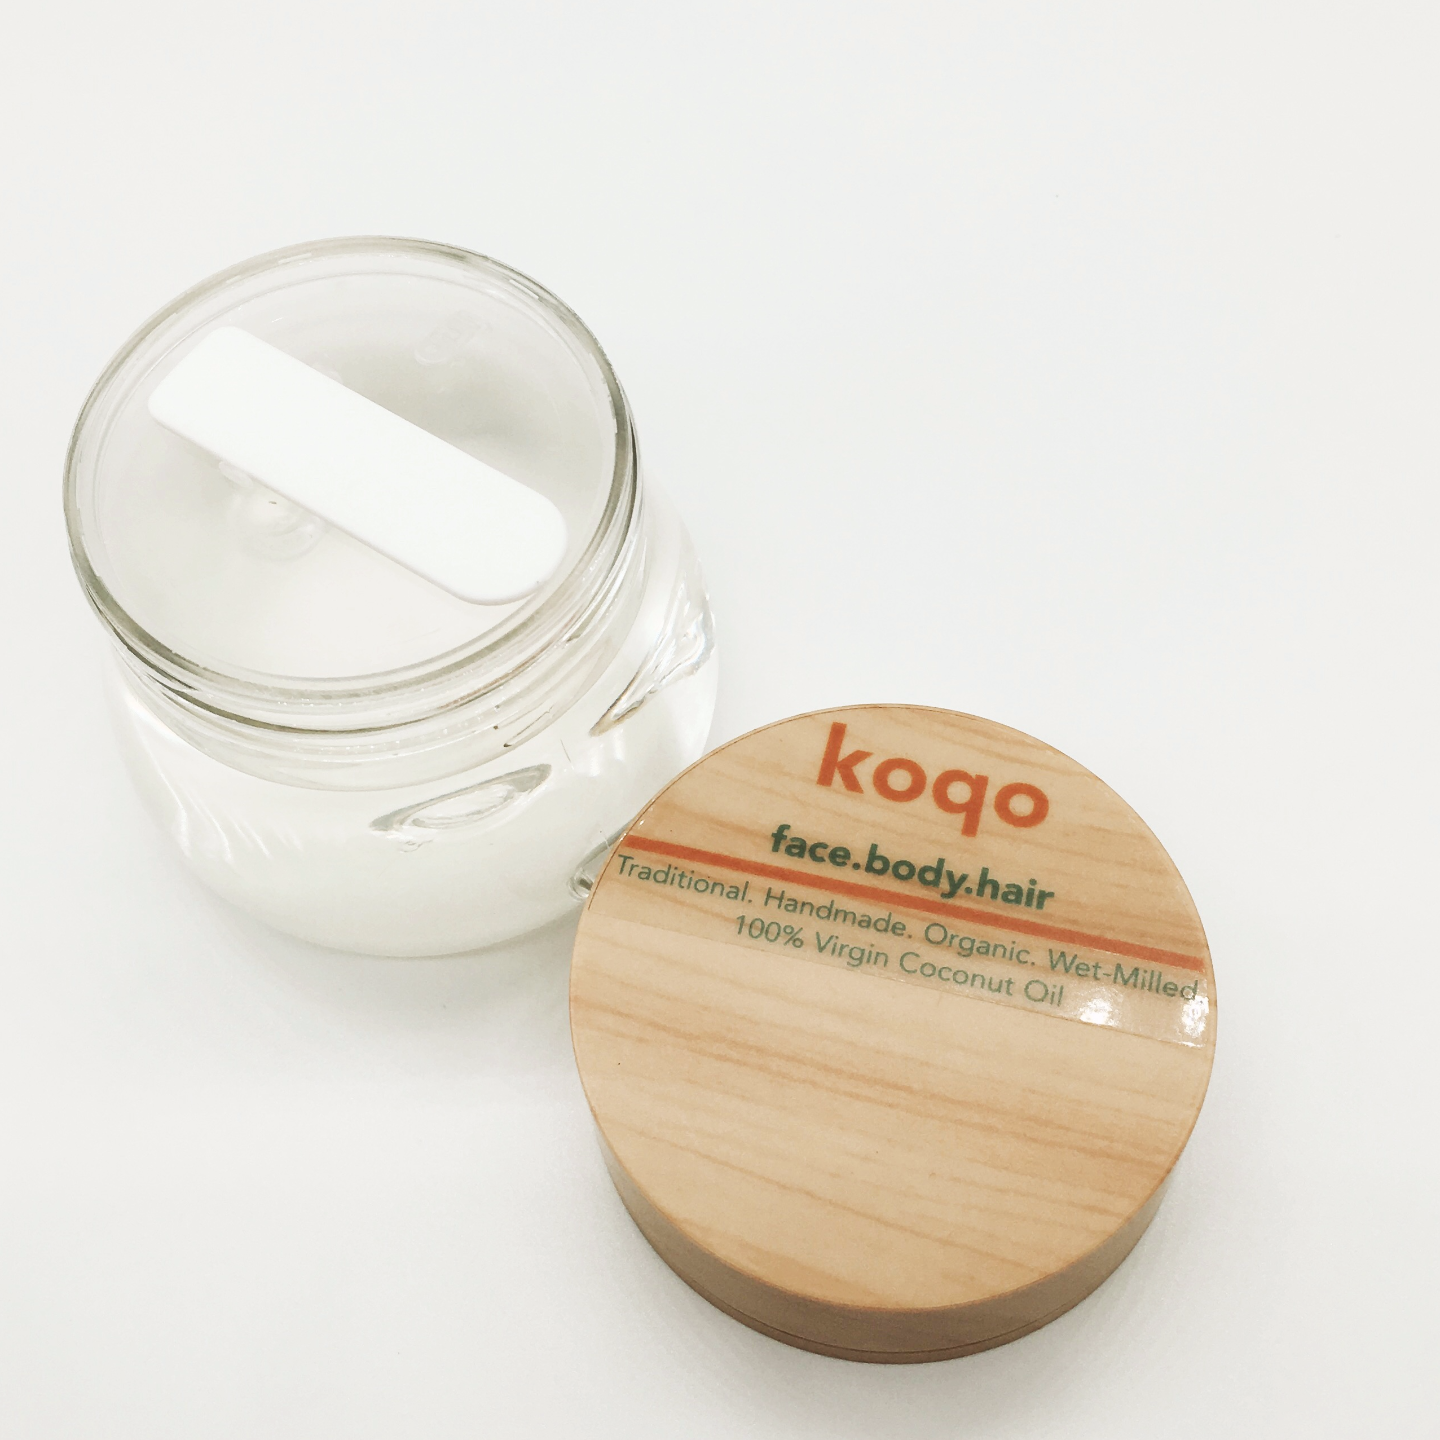 koqo Handmade & Wet-milled 100 Virgin Coconut oil 150g jar with scoop